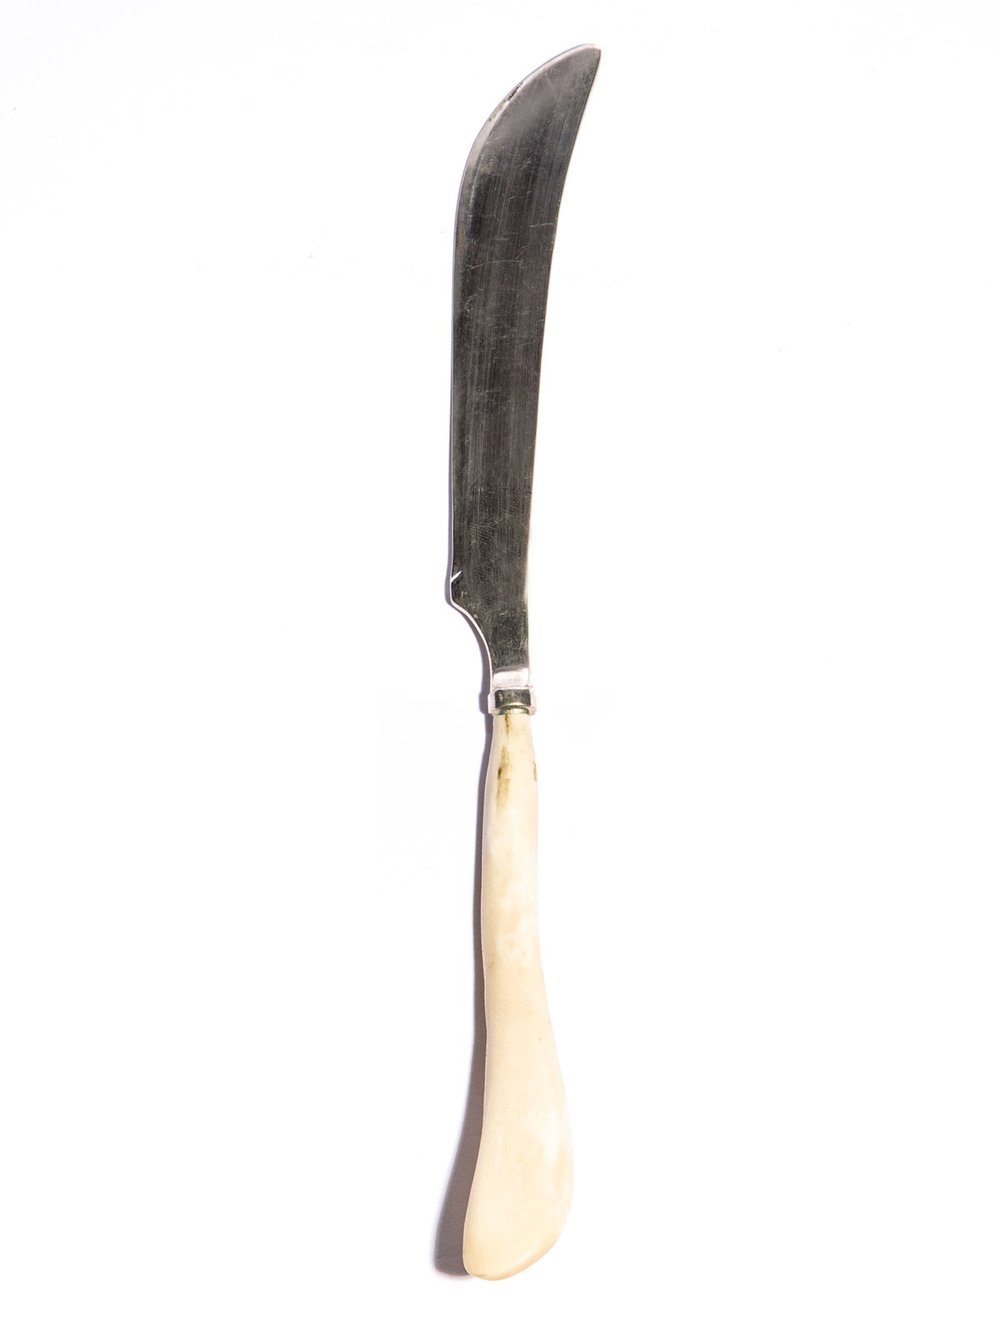 Original knife